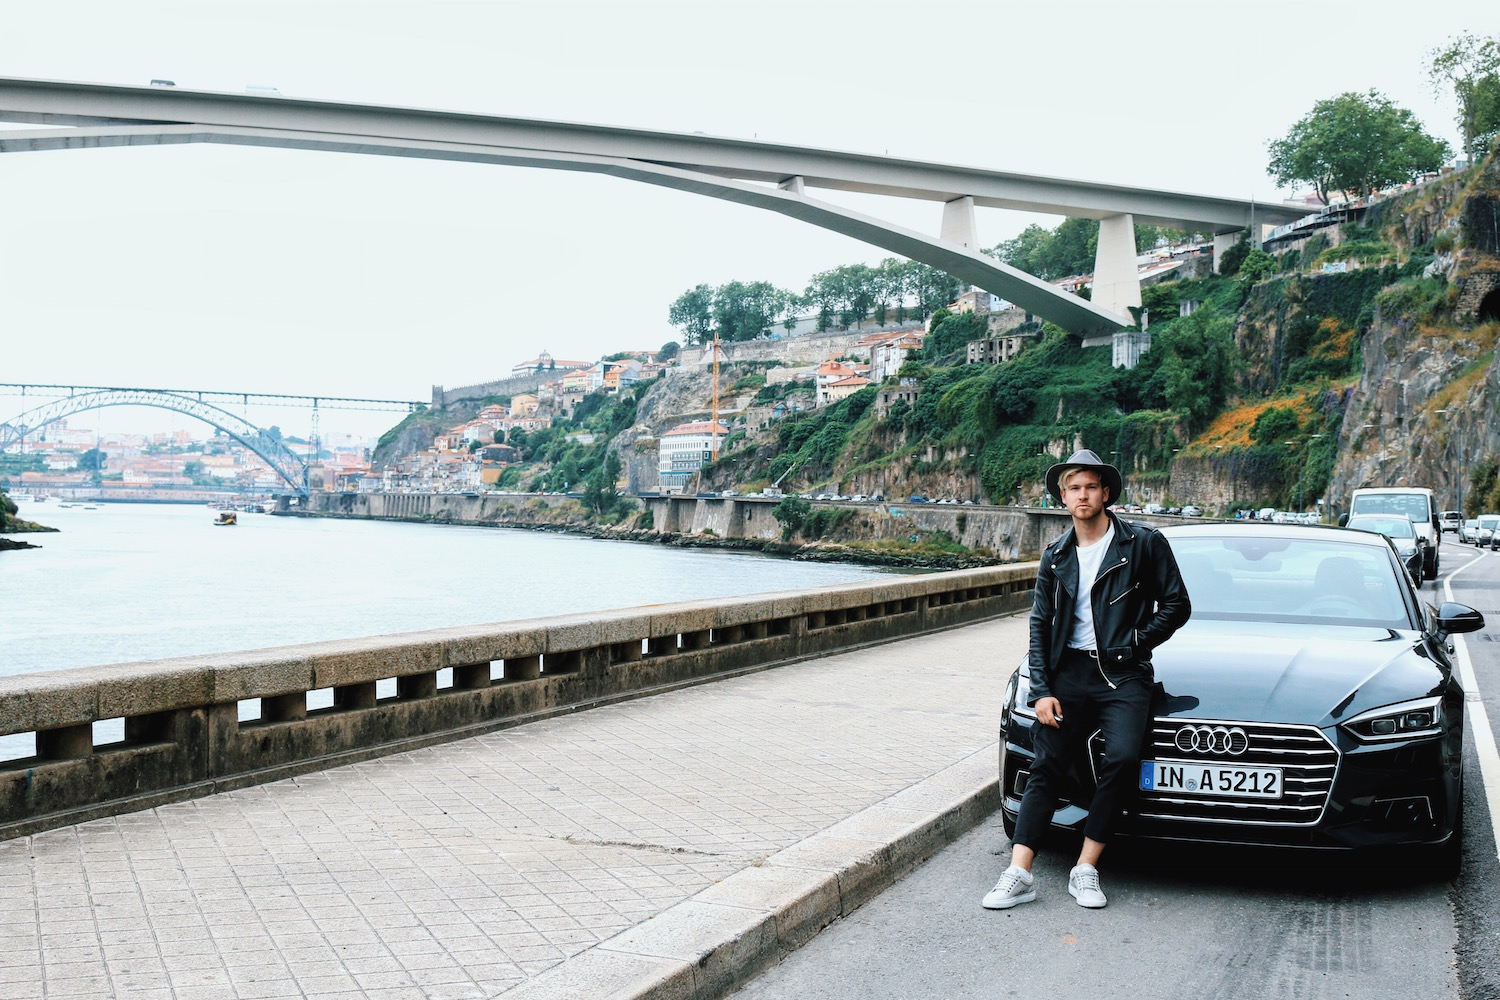 Travel-Diary_A-Long-Weekend-In-Porto_by-Meanwhile-in-Awesometown_Mens-Fashion-and-Lifestyle-Blog-from-Austria_Audi-A5-at-River-Douro-Promenade-Porto